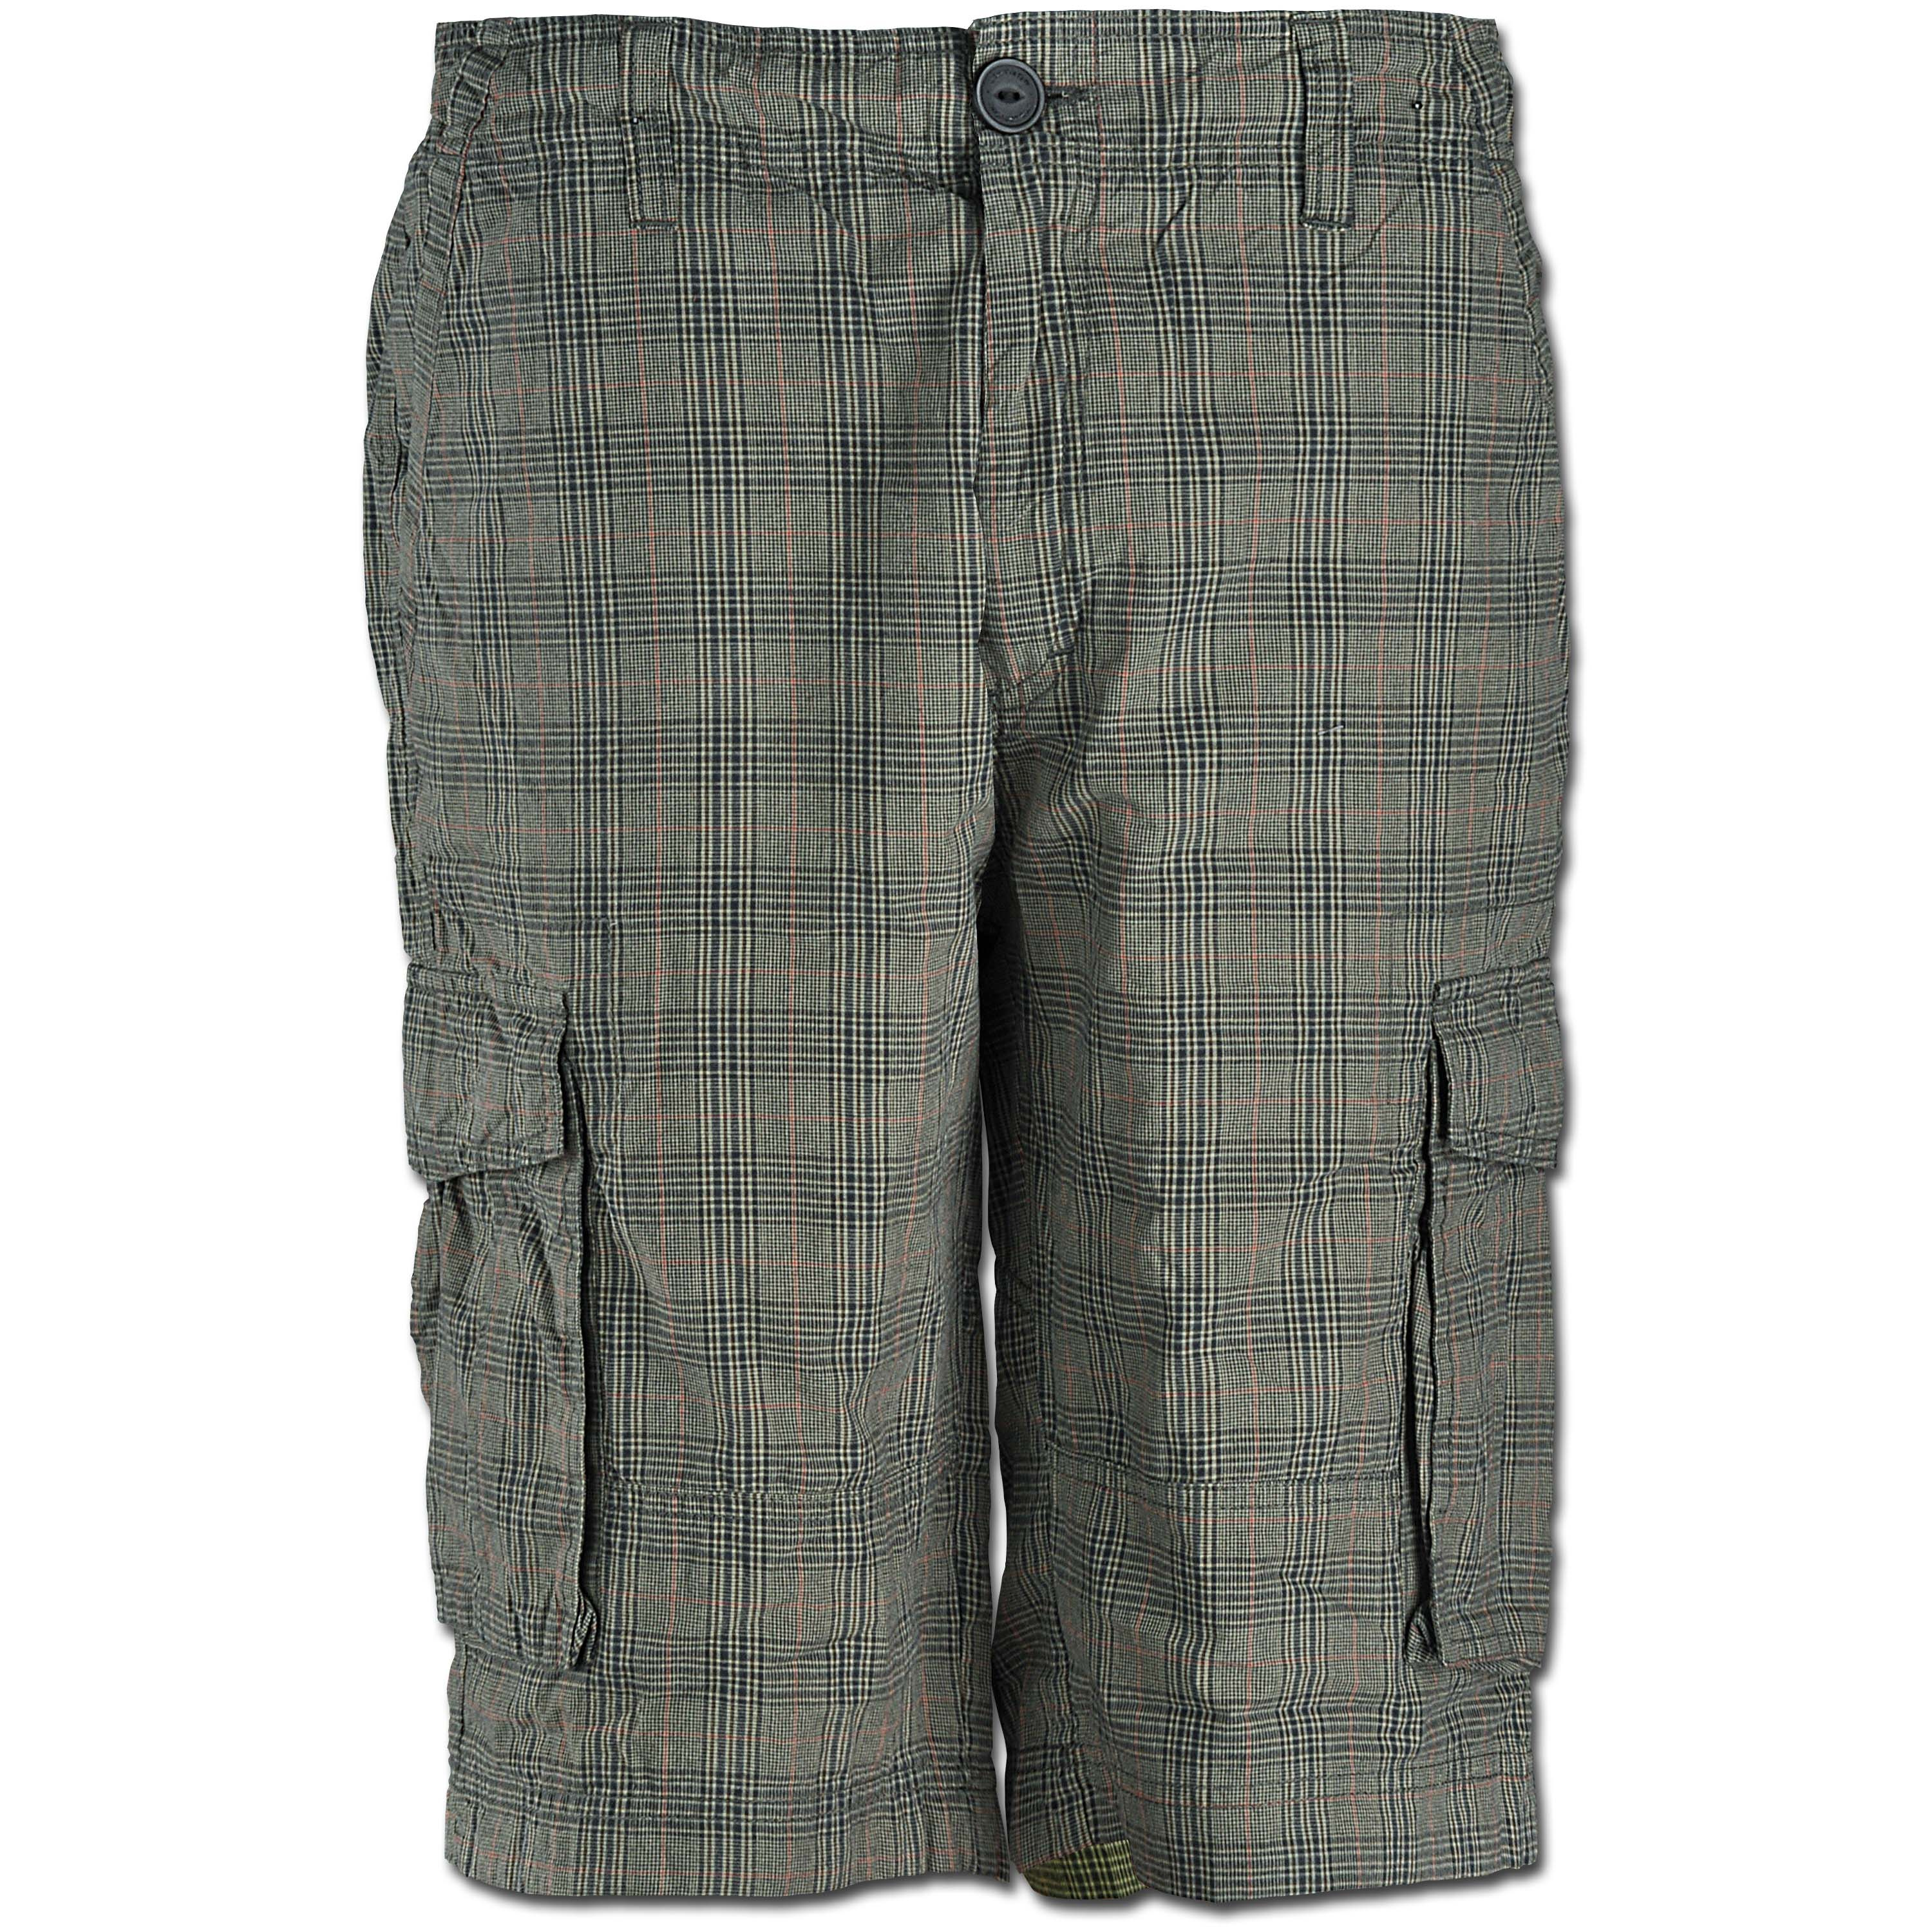 Shorts Vintage Industries Lance brown checkered